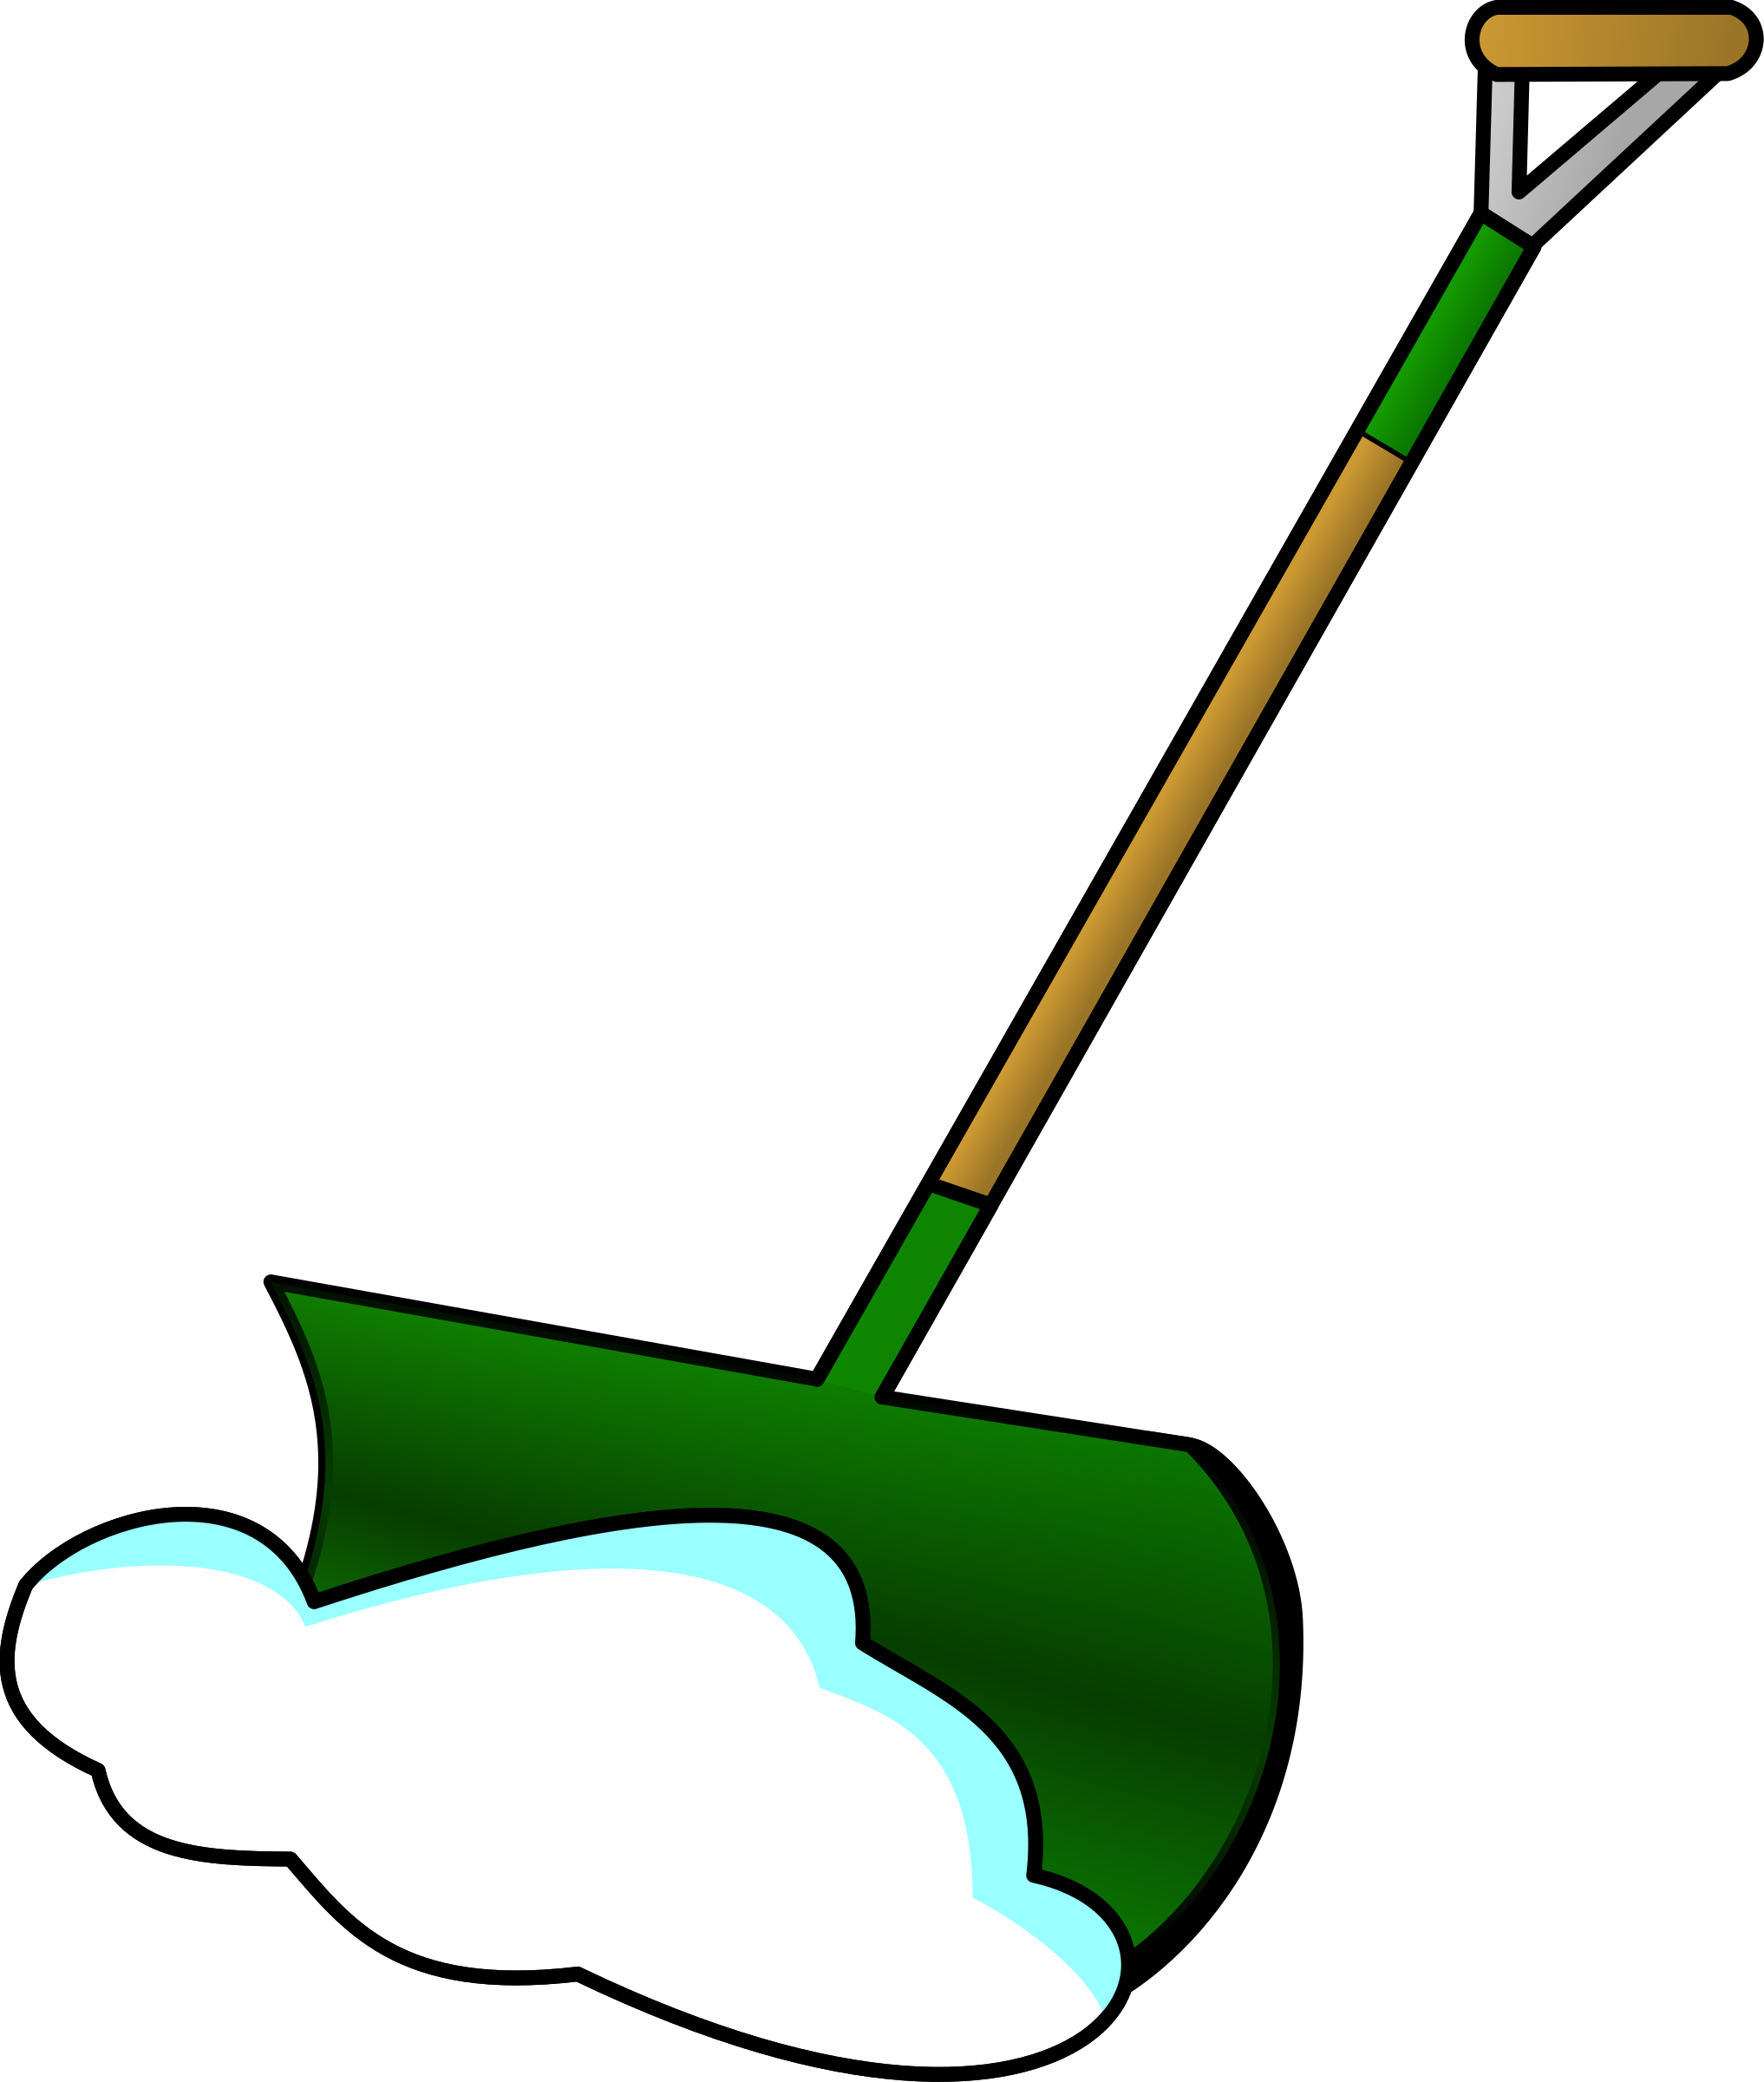 Big image png. Plow clipart snow shovel svg library library